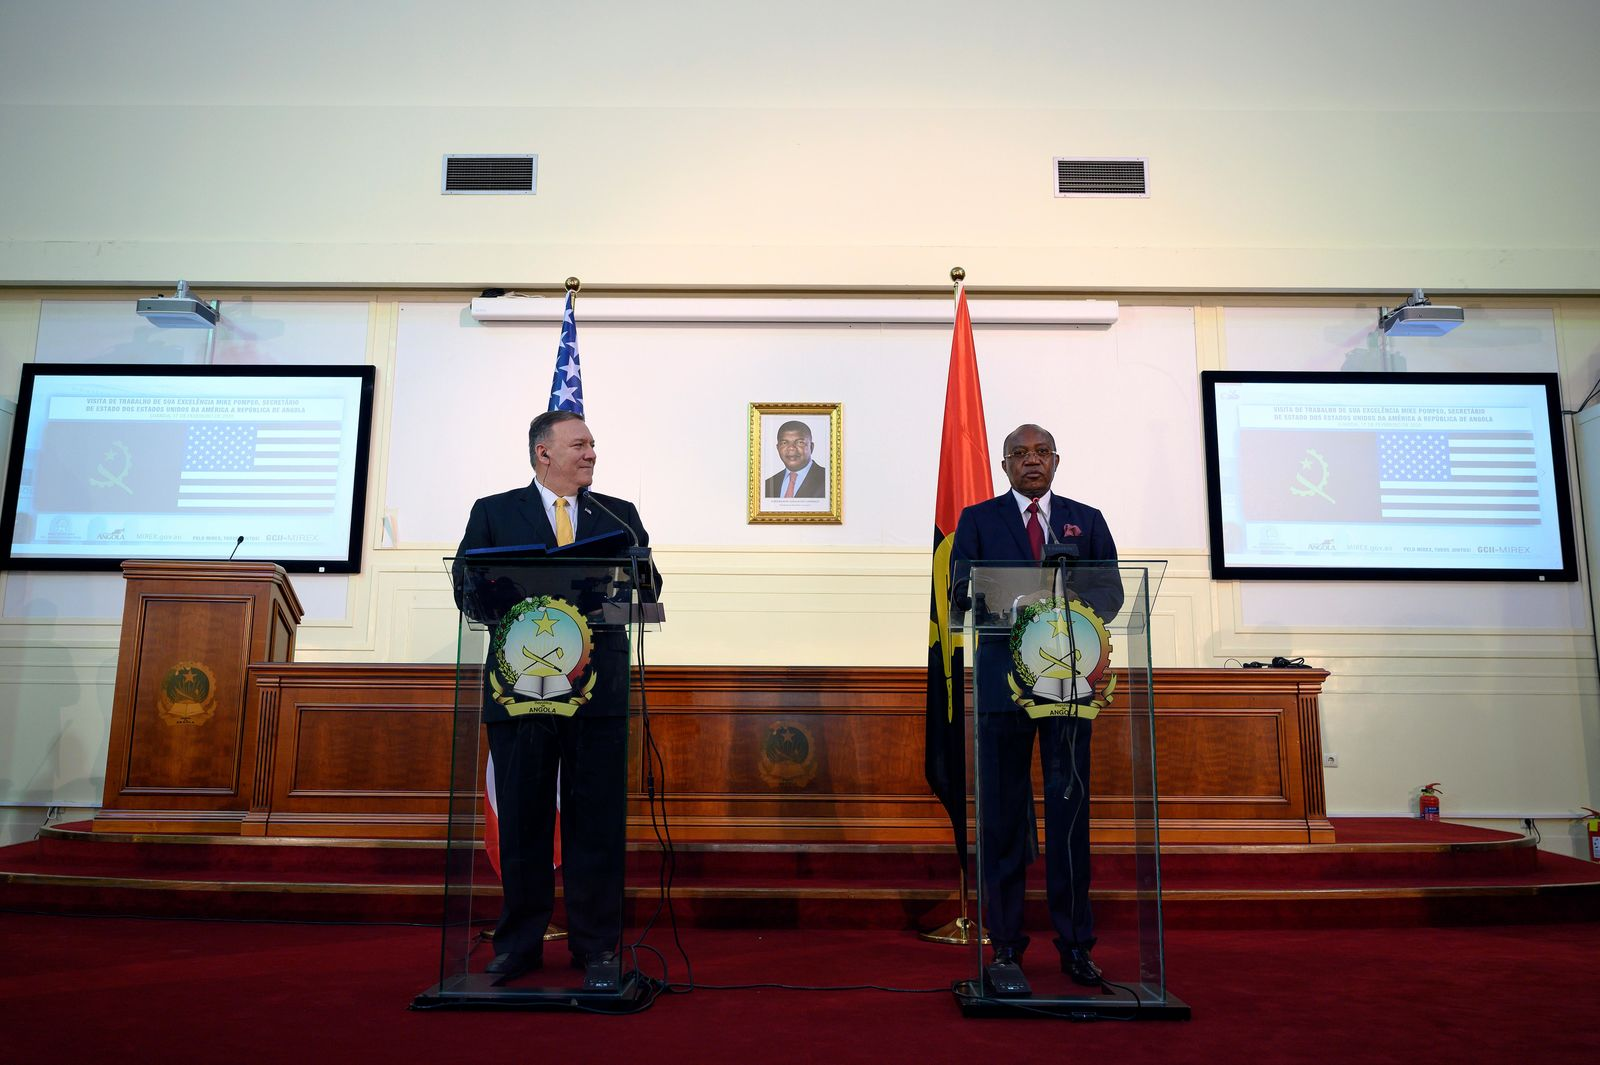 US Secretary of State, Mike Pompeo, left, and Angola Foreign Minister, Manuel Domingos Augusto hold a press conference in Luanda, Angola, Monday Feb. 17, 2020. (Andrew Caballero-Reynolds/Pool via AP)